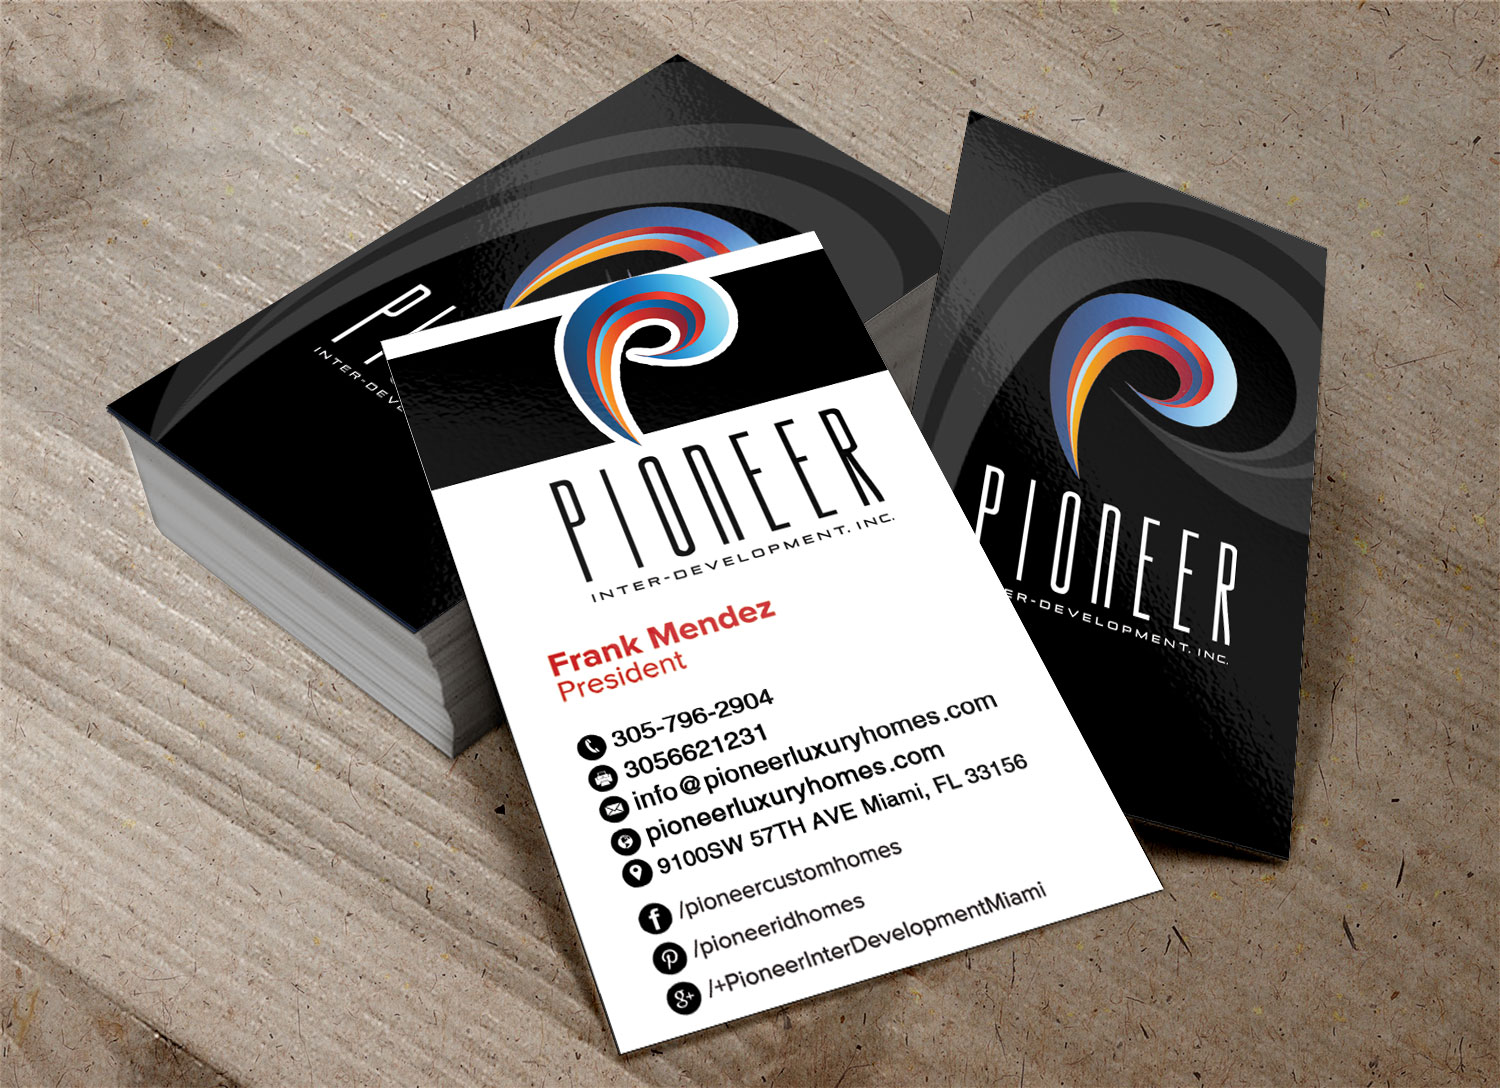 Business Card Design By Pawana Designs For Pioneer Inter Development, Inc.  | Design